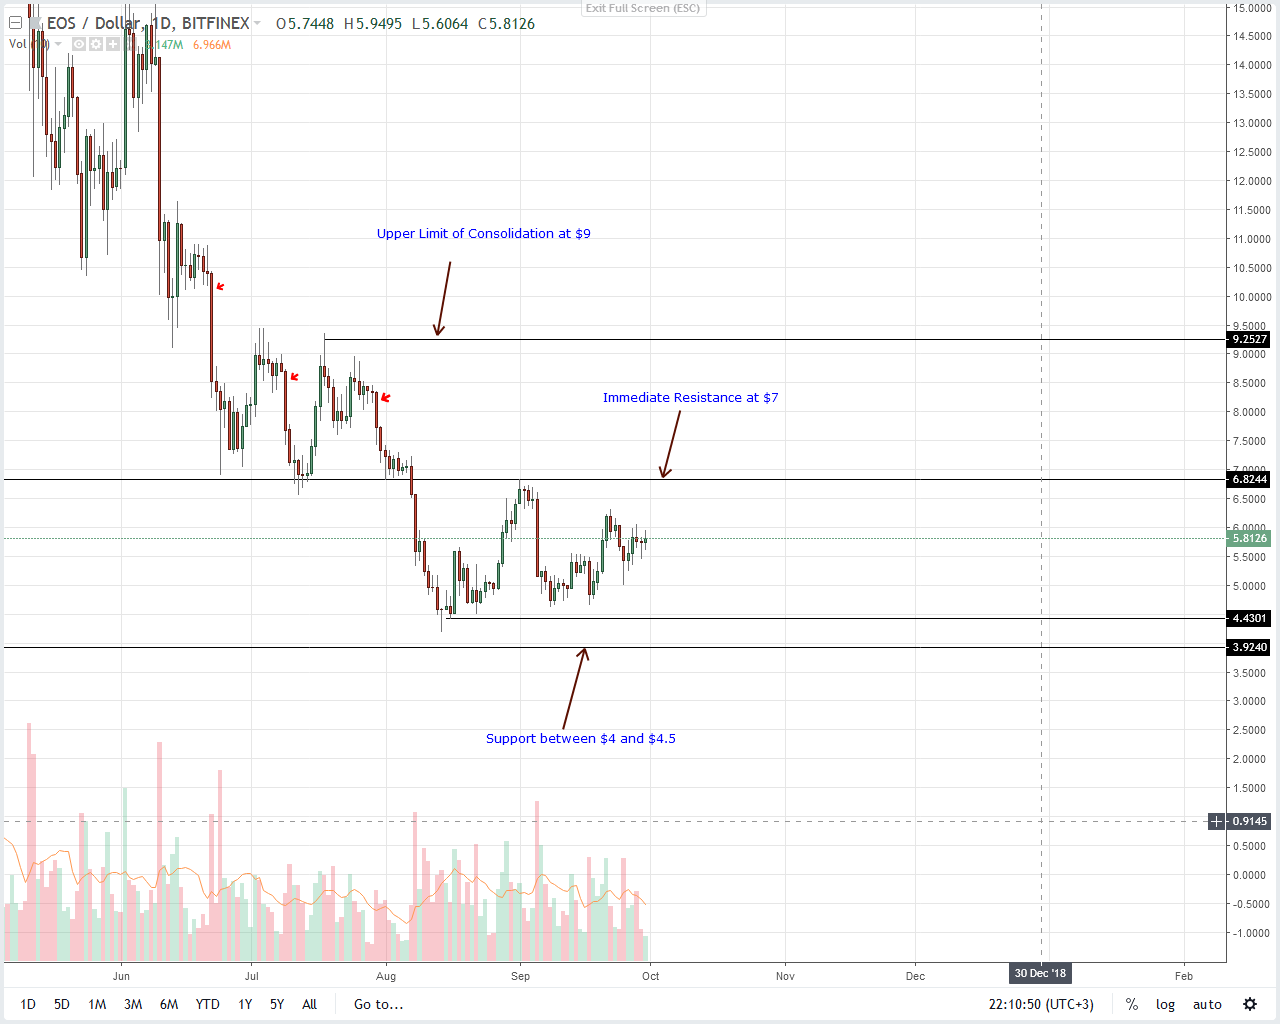 EOS Daily Chart Sep 30